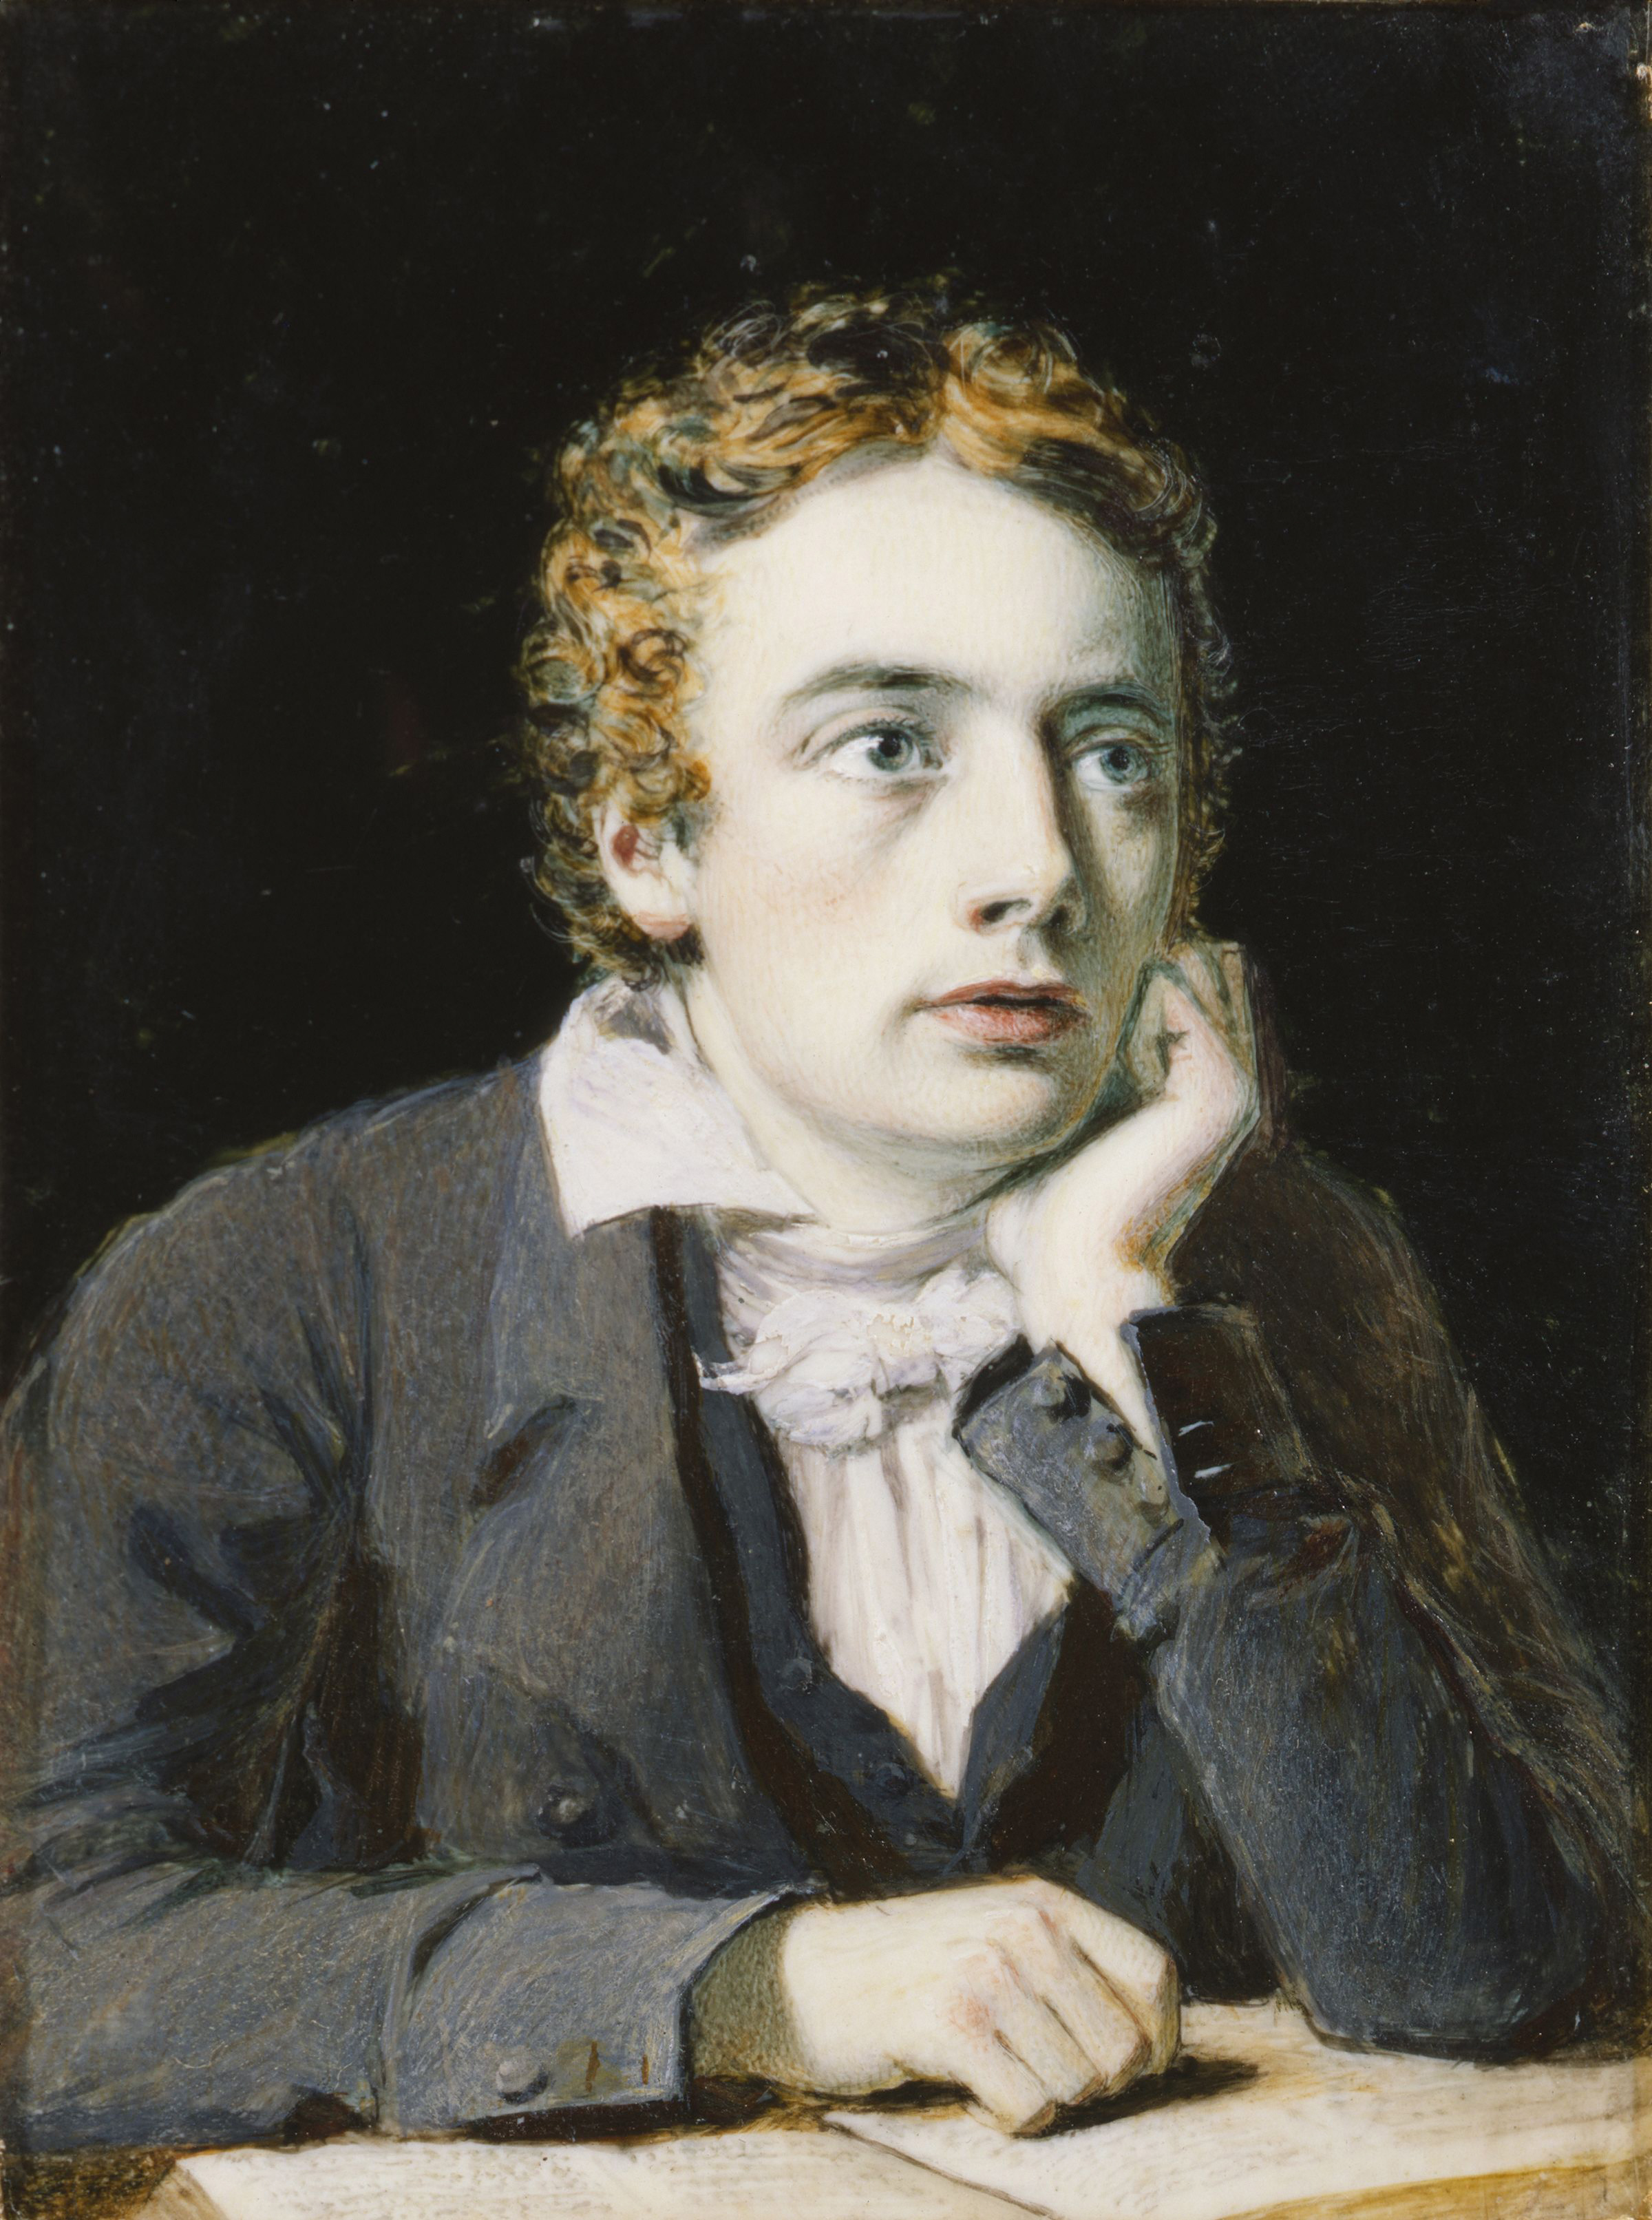 teaching r ticism x john keats r tic textualities i johnkeats1819 hires